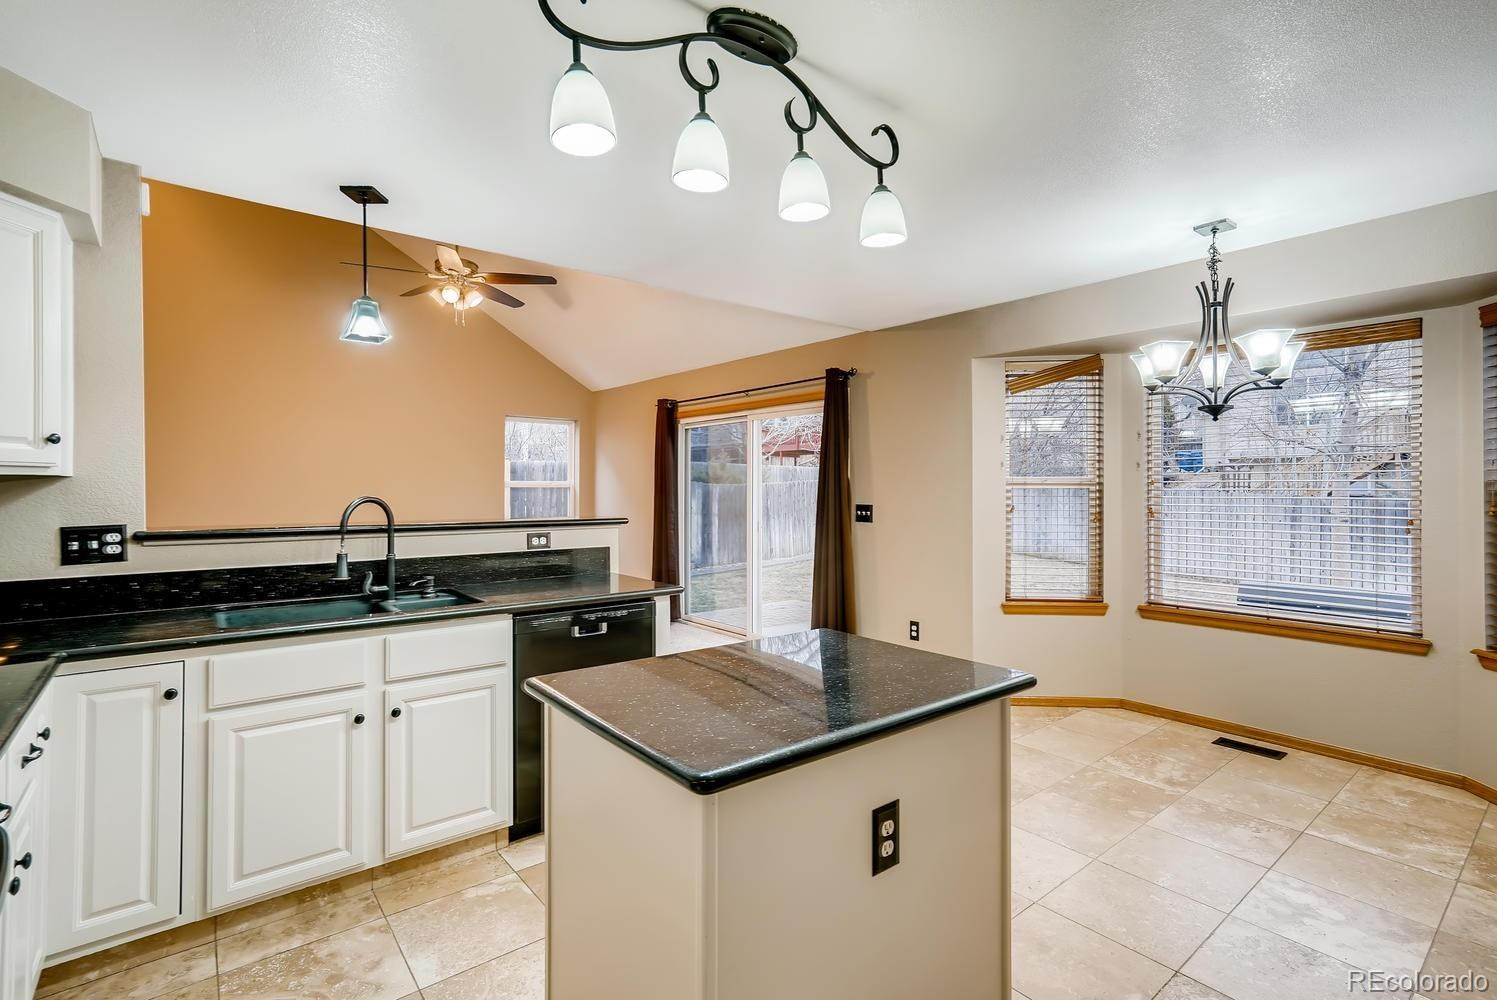 MLS# 6431155 - 11 - 6773 W 98th Circle, Westminster, CO 80021